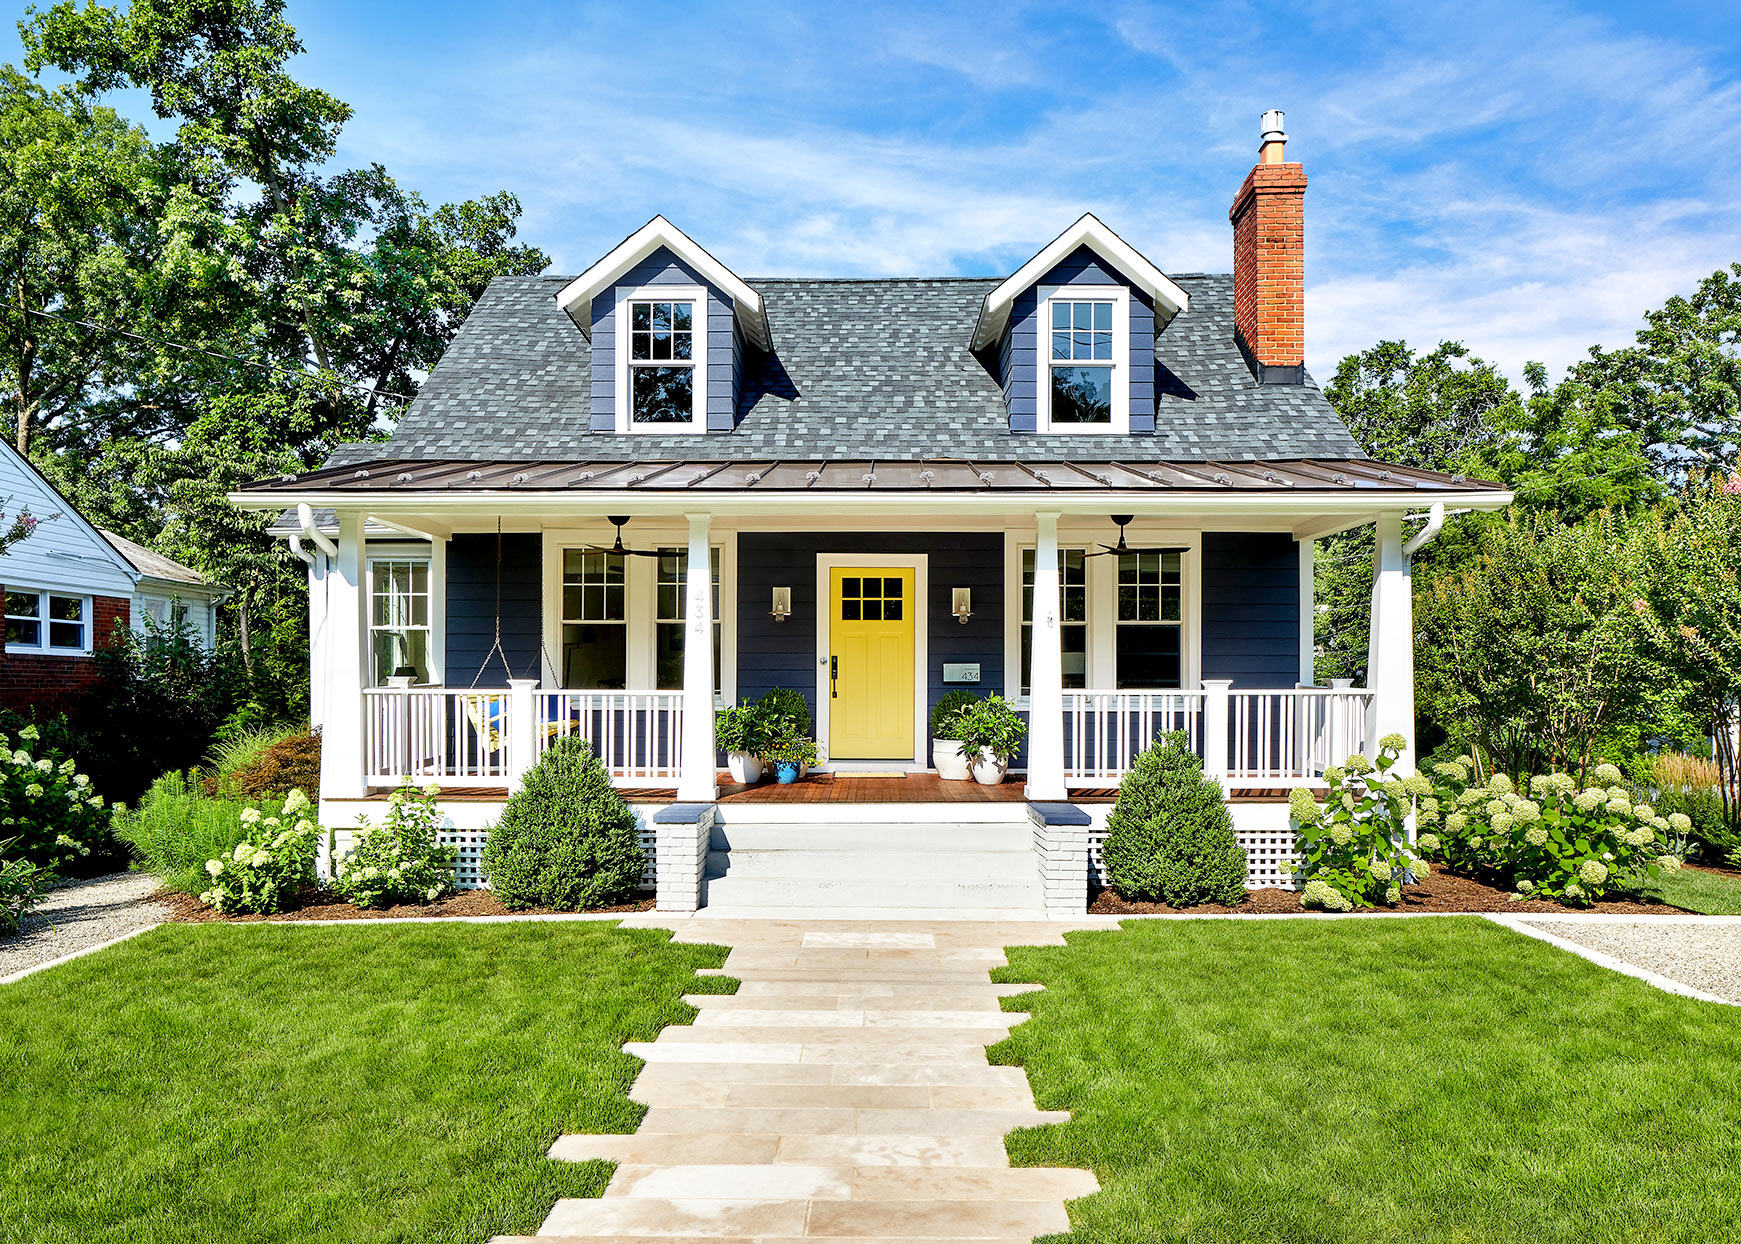 Front of blue house with white accents